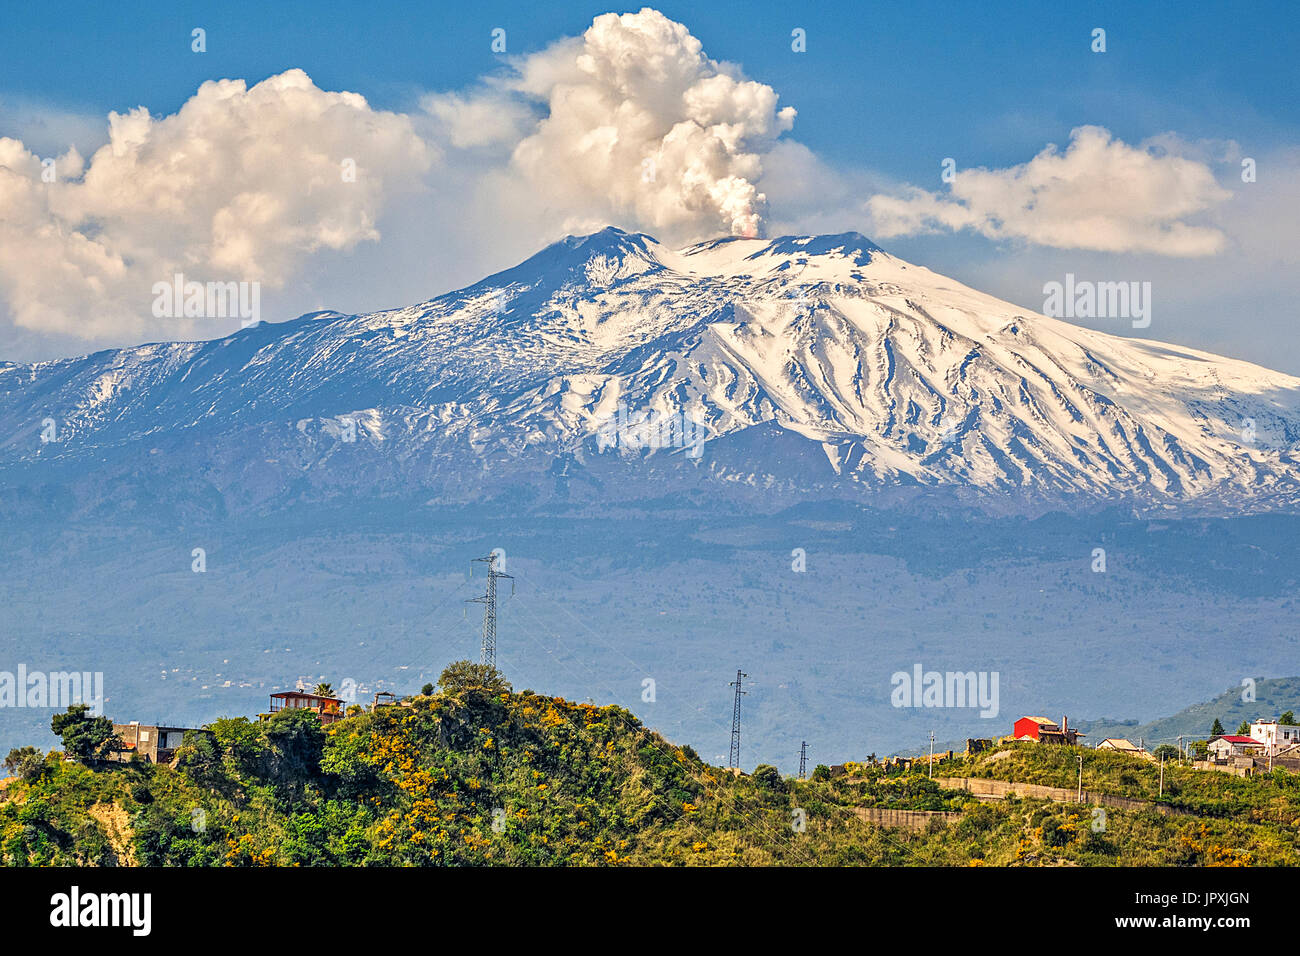 Steam Rising From Mount Etna Taormina, Italy - Stock Image